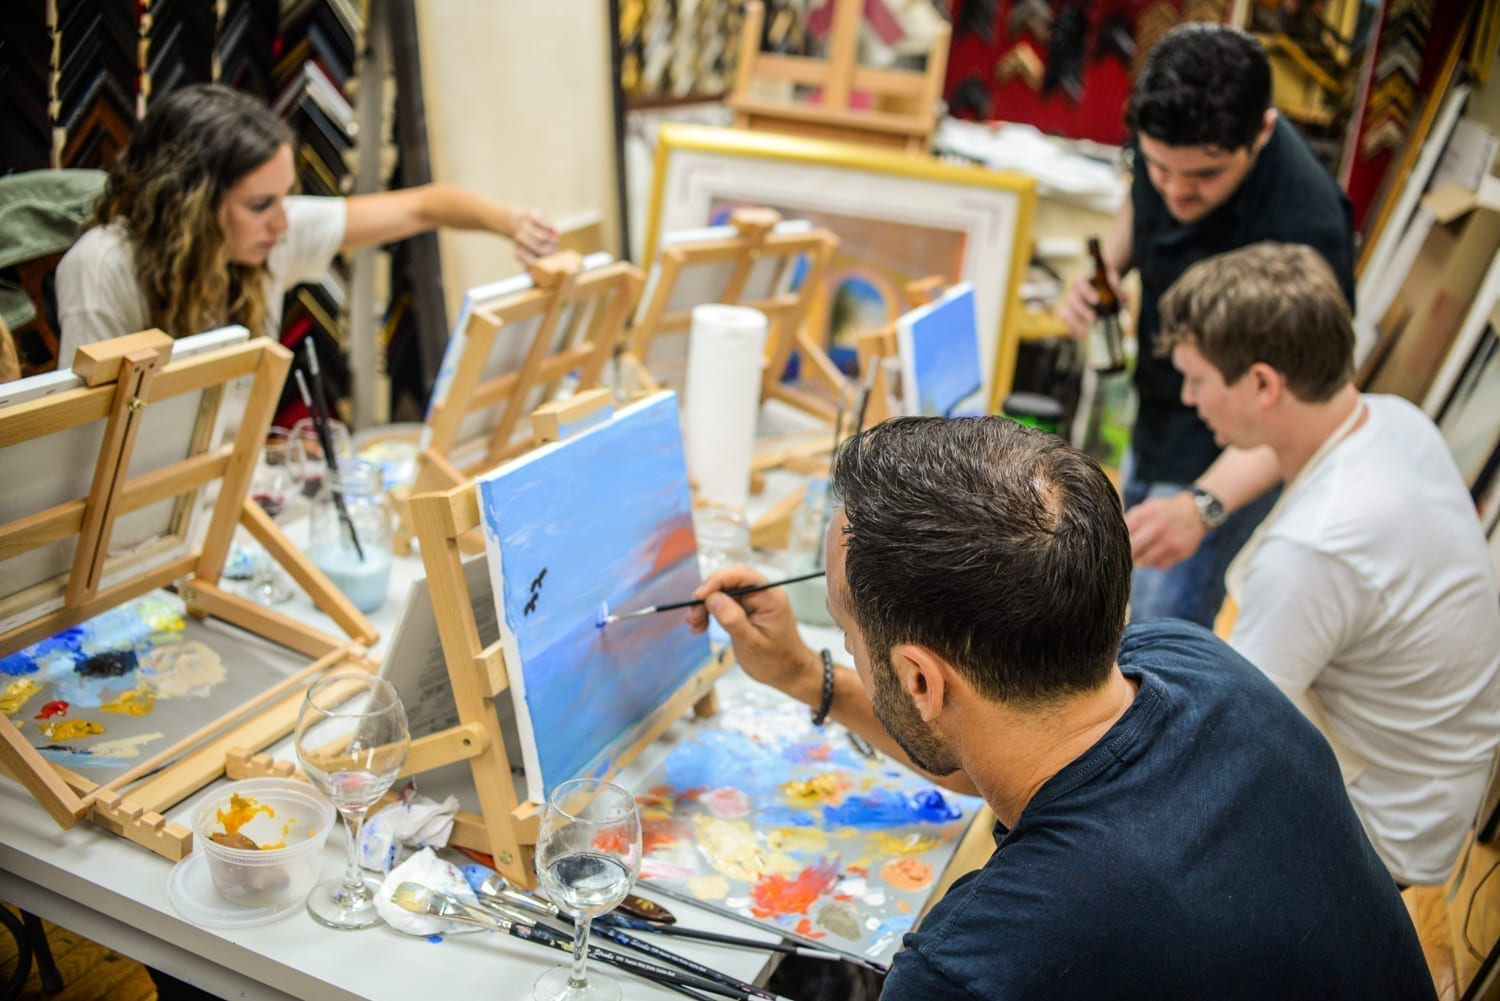 Painting the Town at Tresorie: BYOB Painting Class - The ...